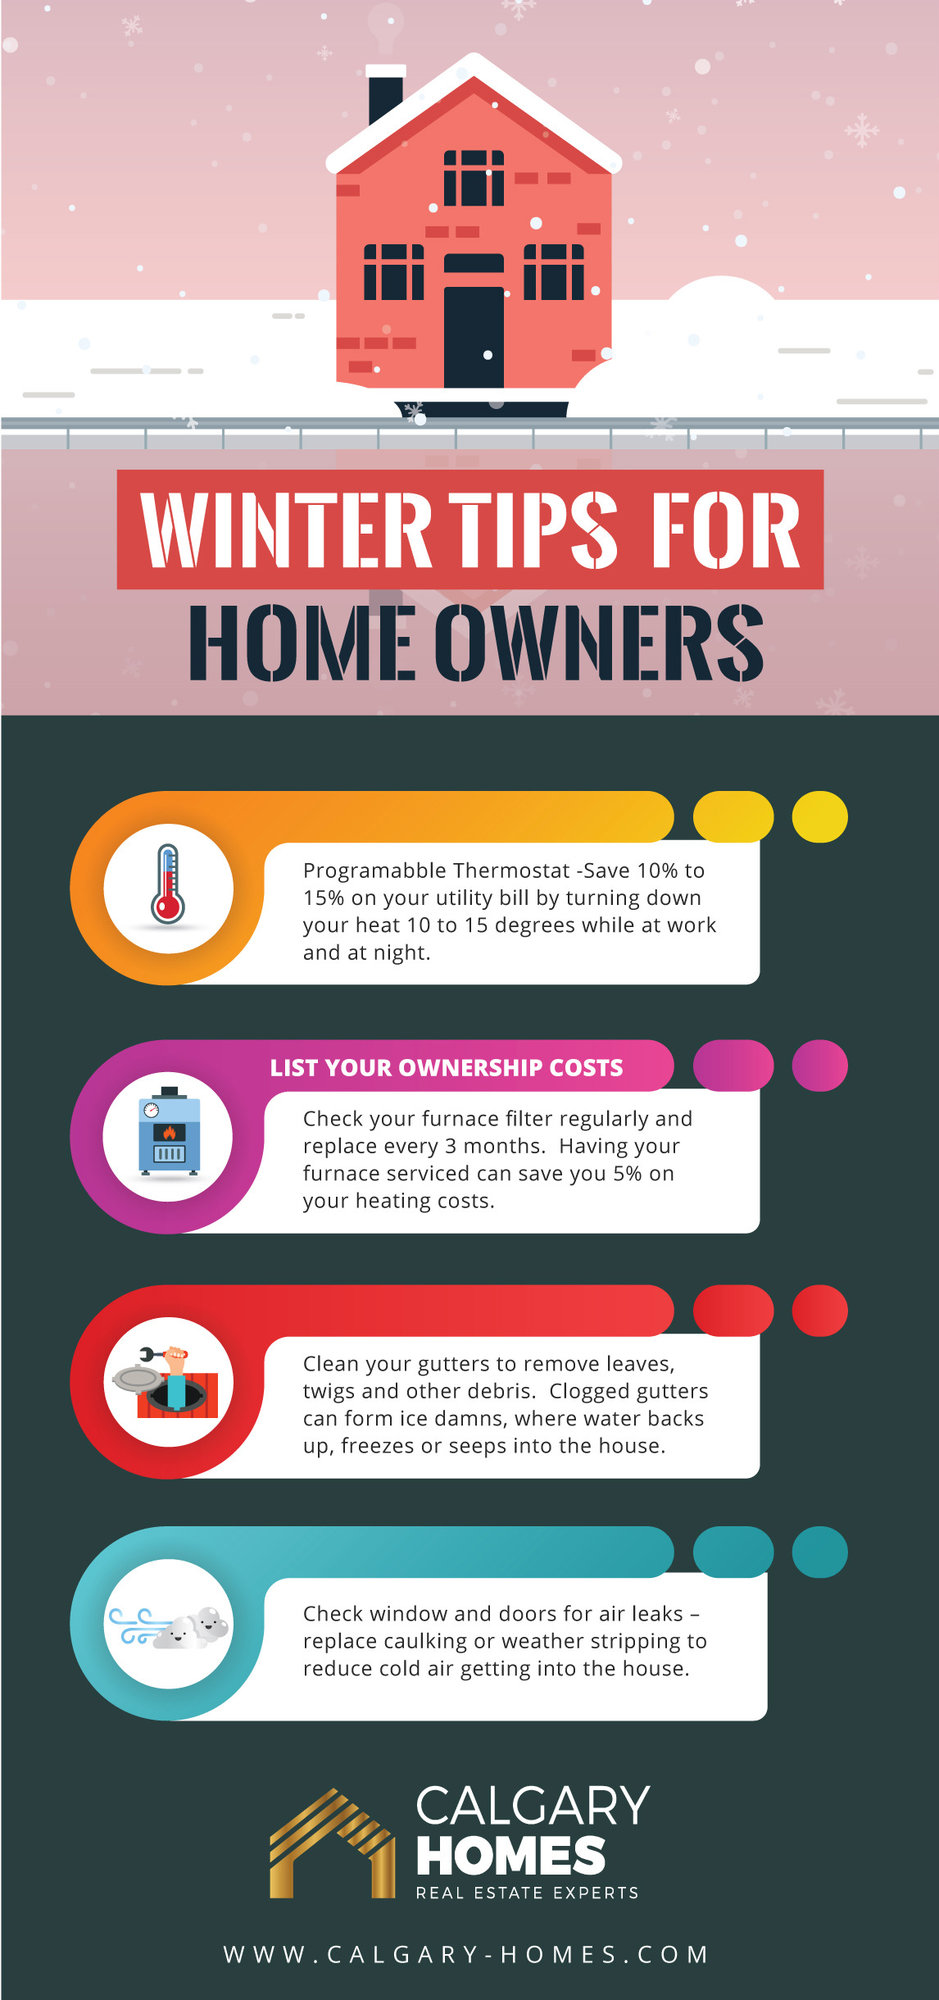 Winter Tips for Home Owners